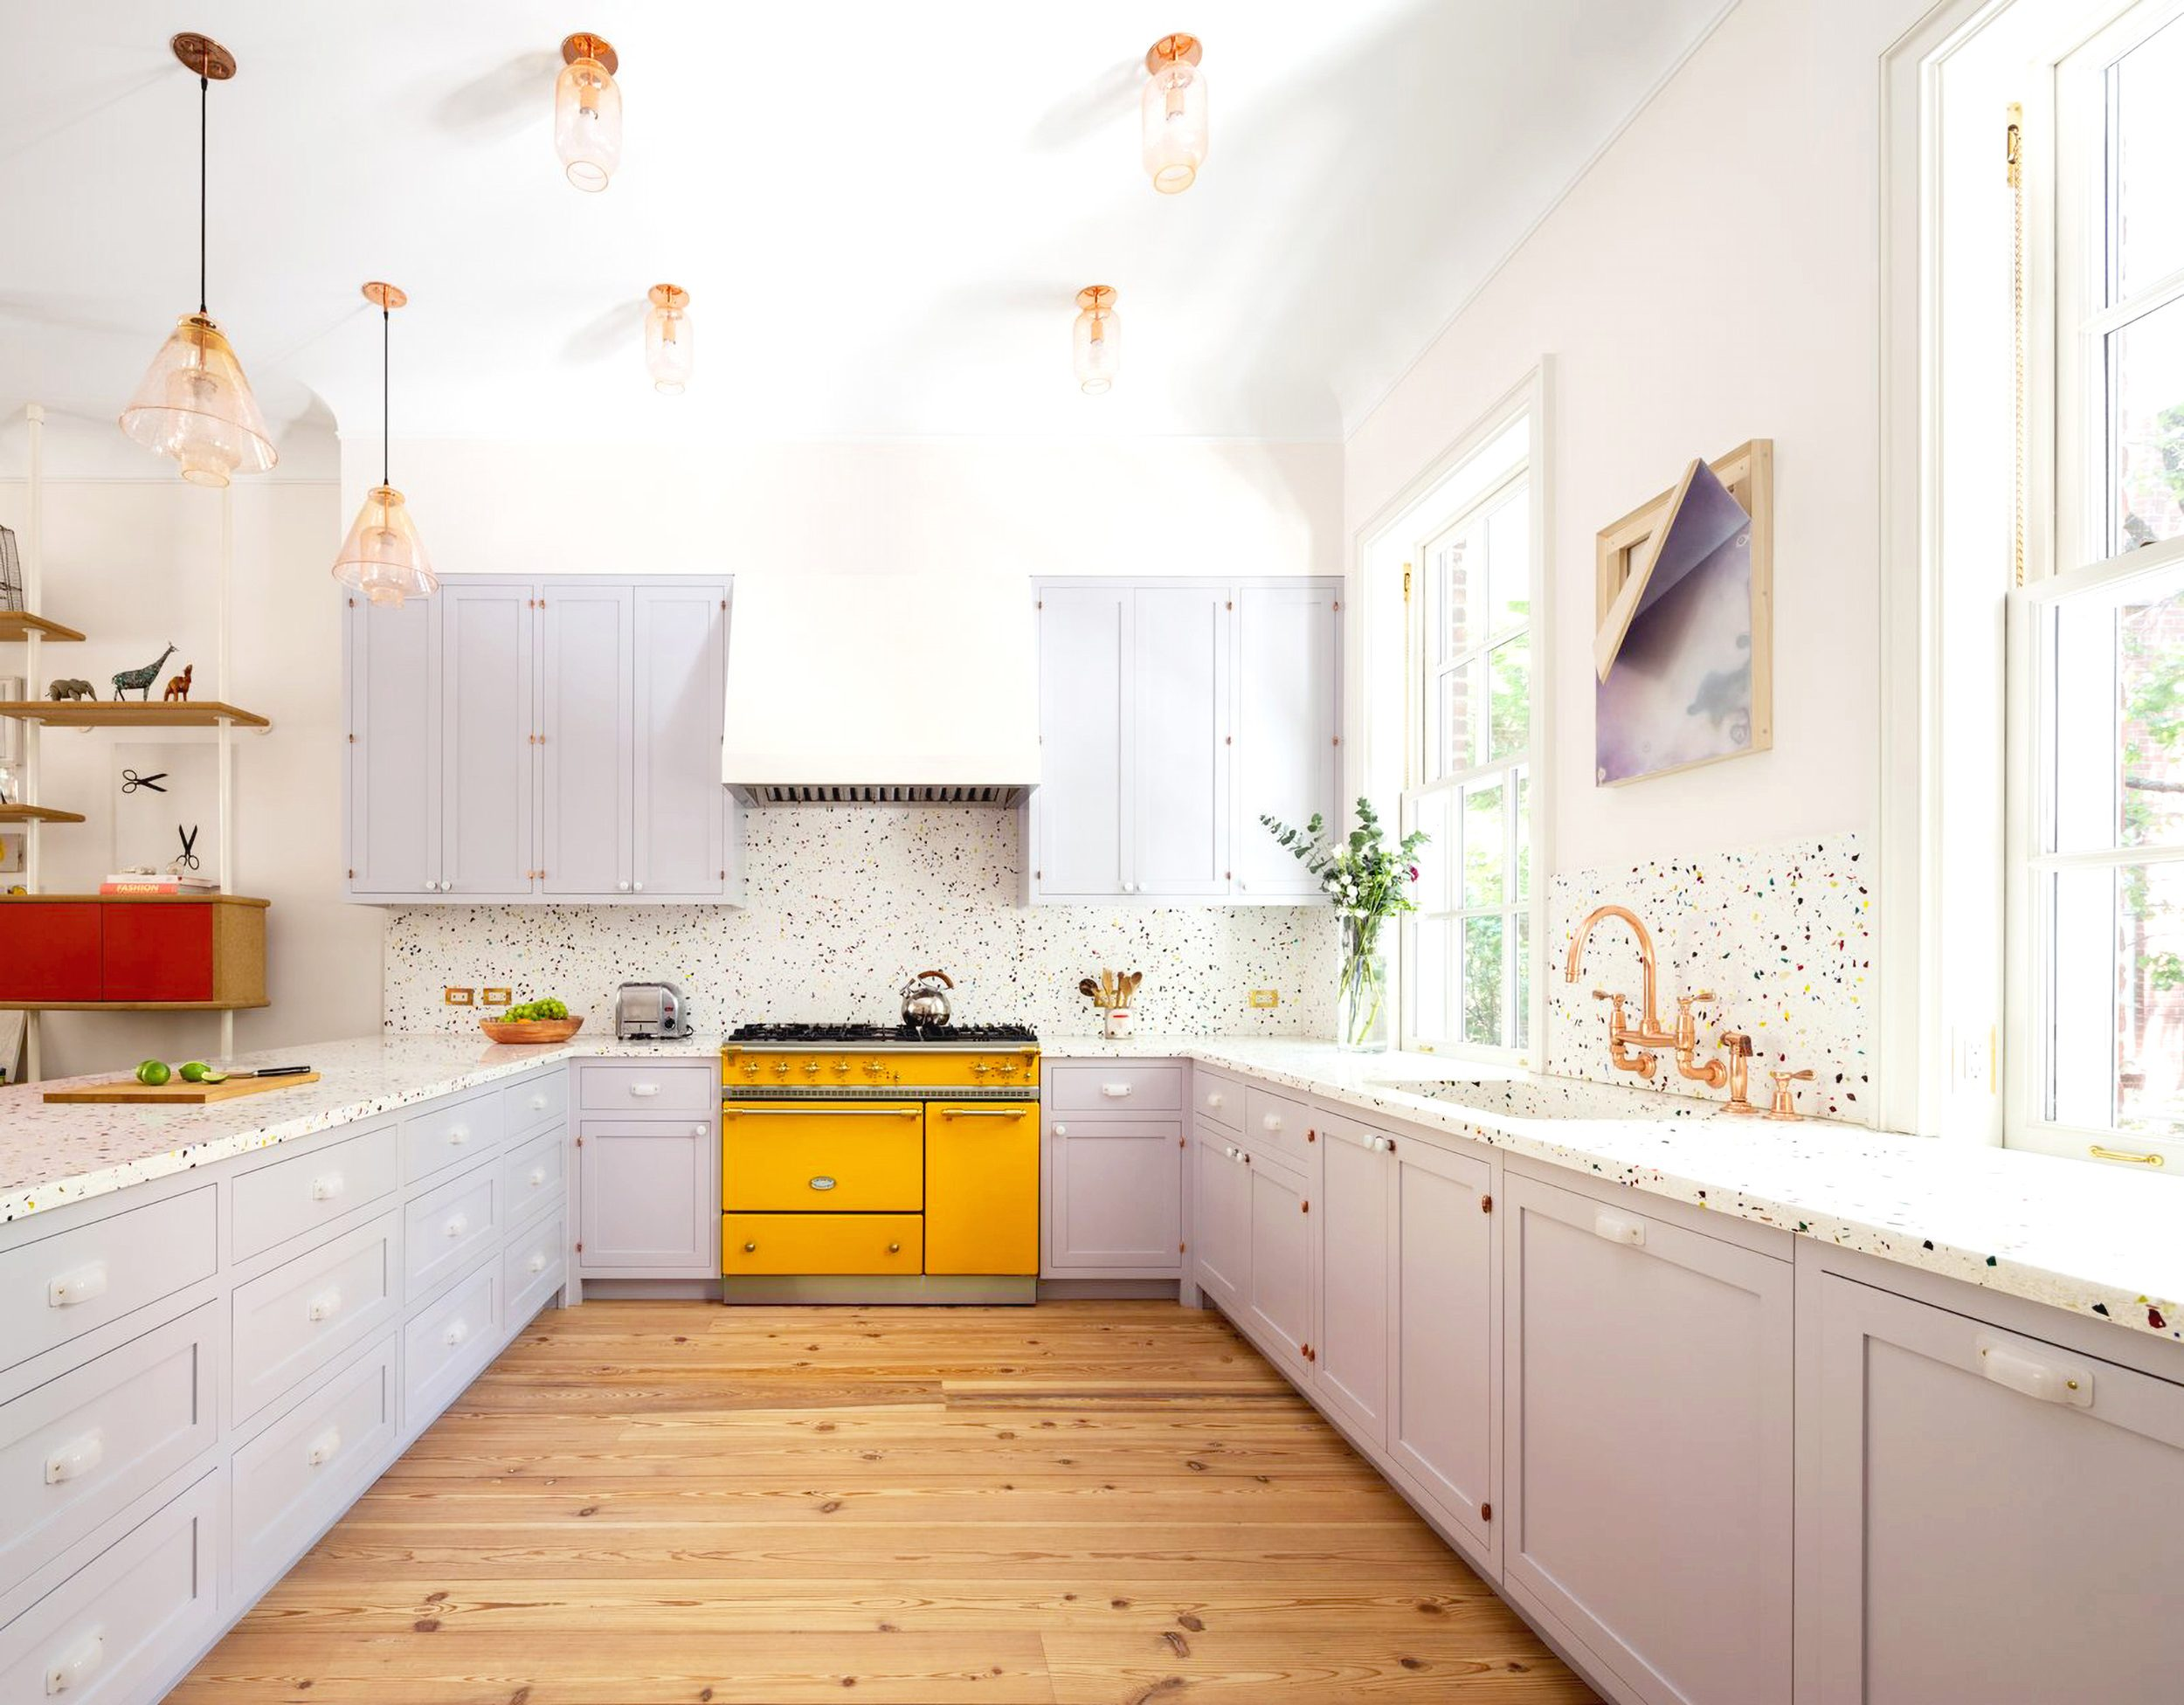 a lilac kitchen accented with a bright yellow cooker and a polka dot backsplash plus brass lamps